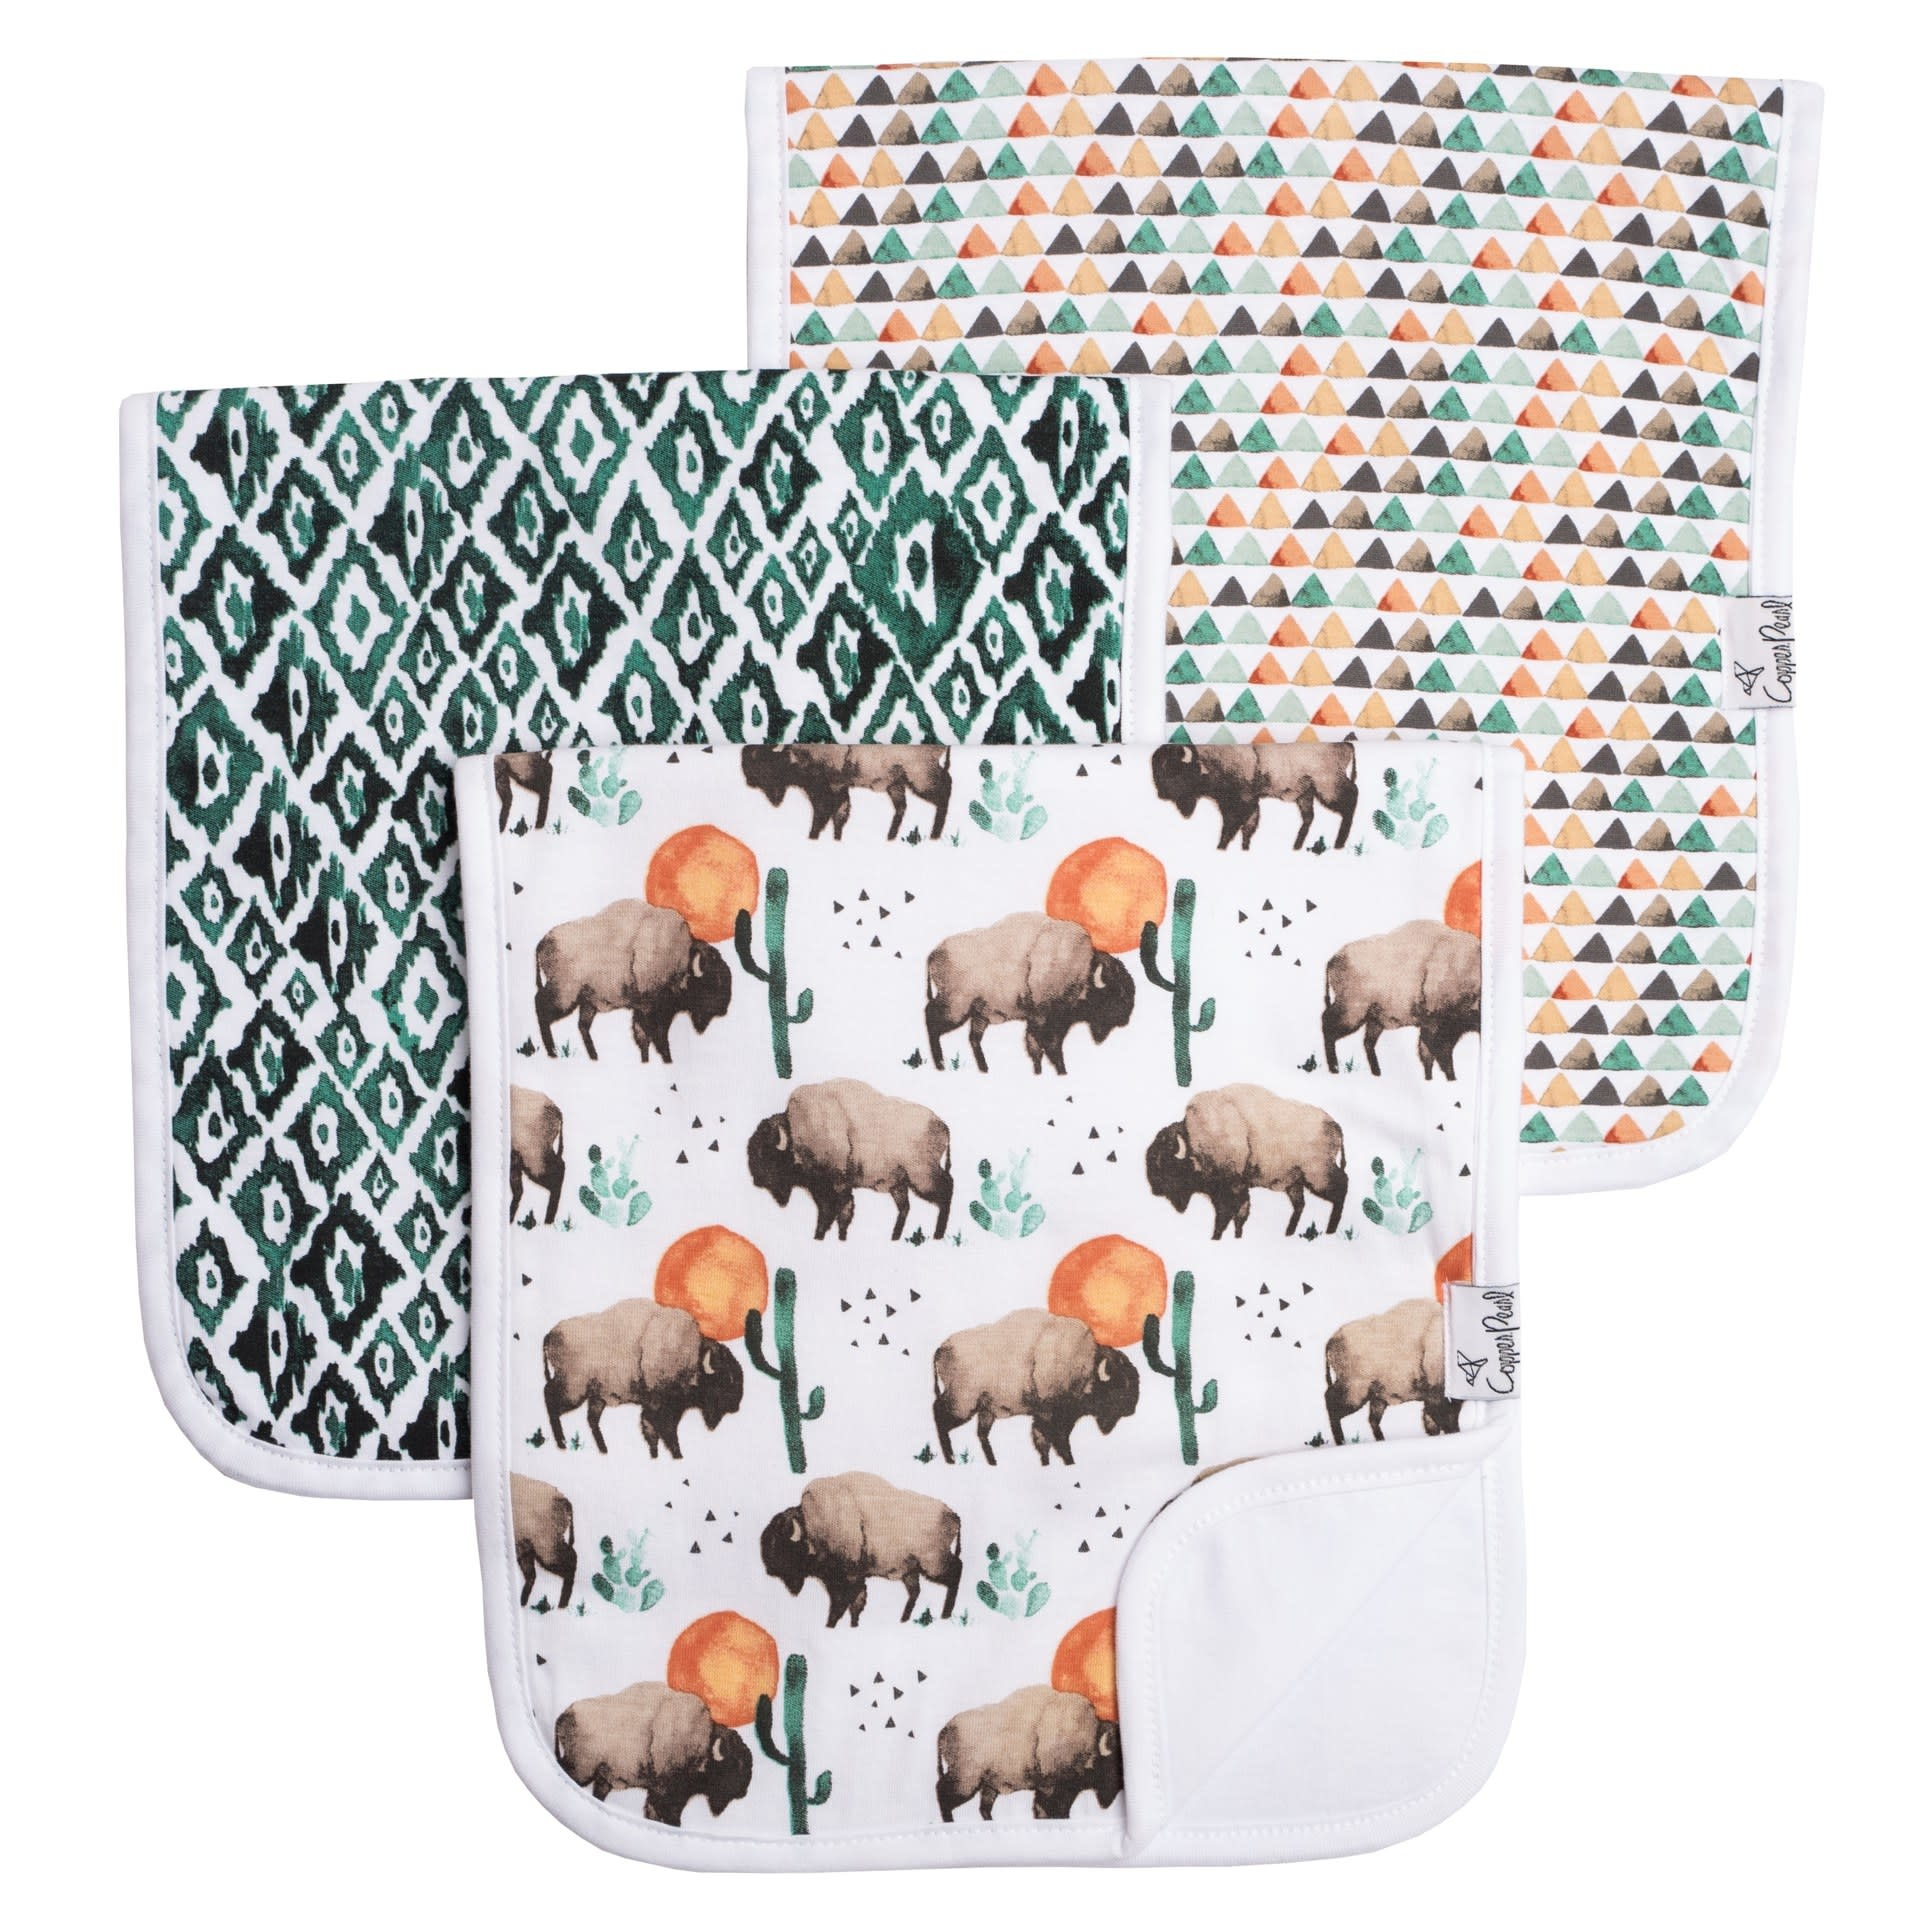 Copper Pearl Burp Cloths (3 pack) - Bison